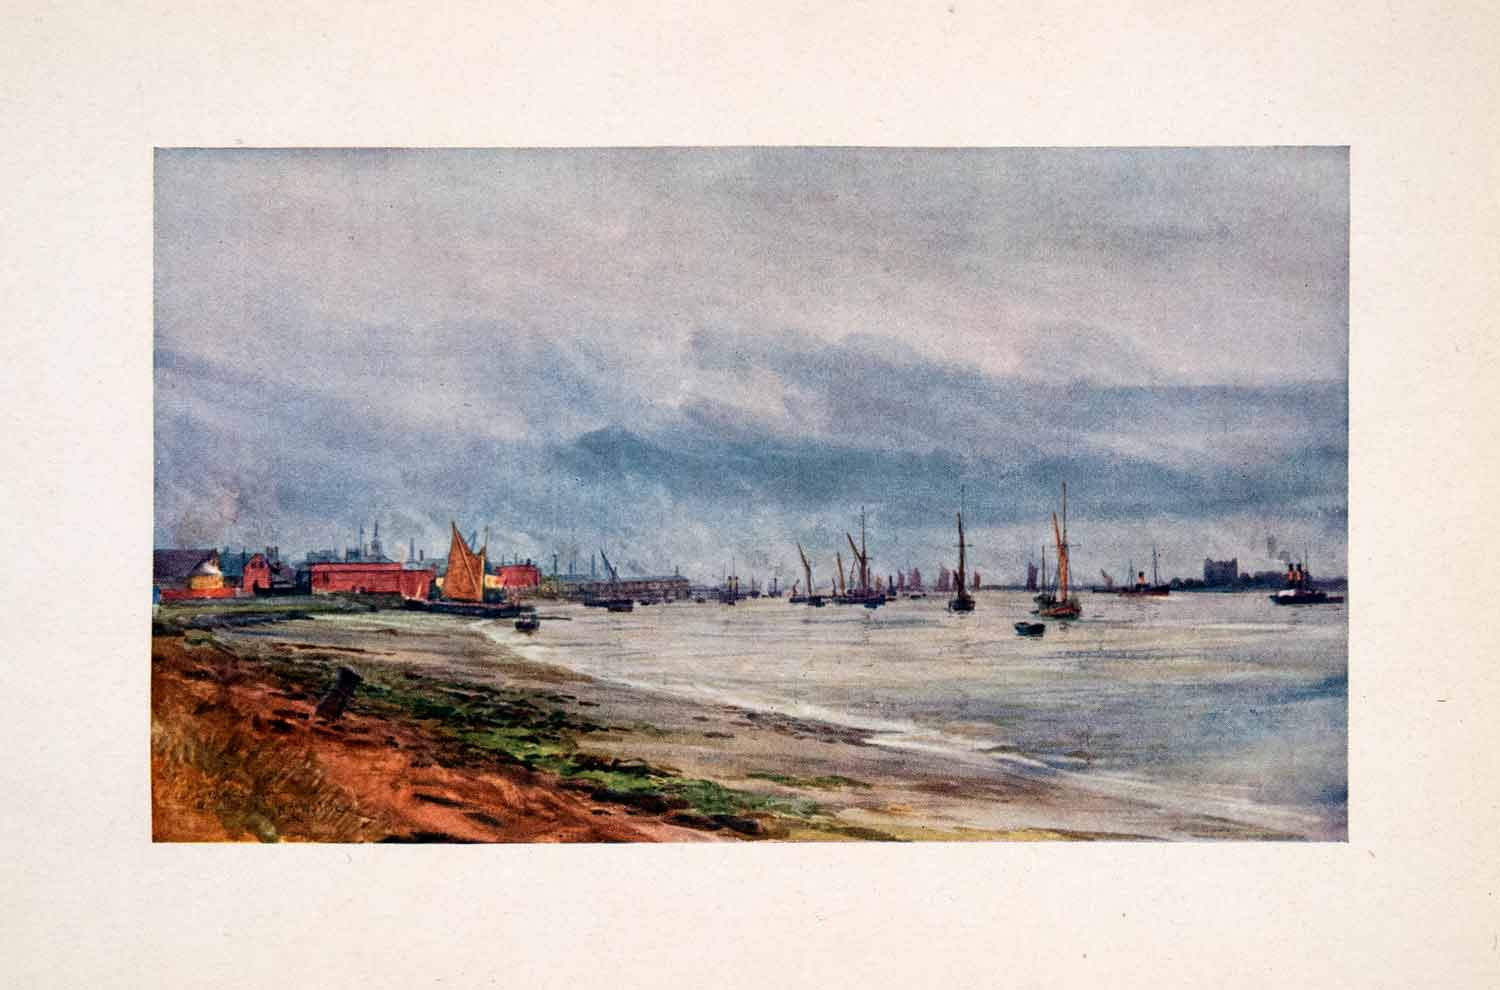 1905 Print Gravesend Kent England Thames River Shore William Lionel Wyllie Art